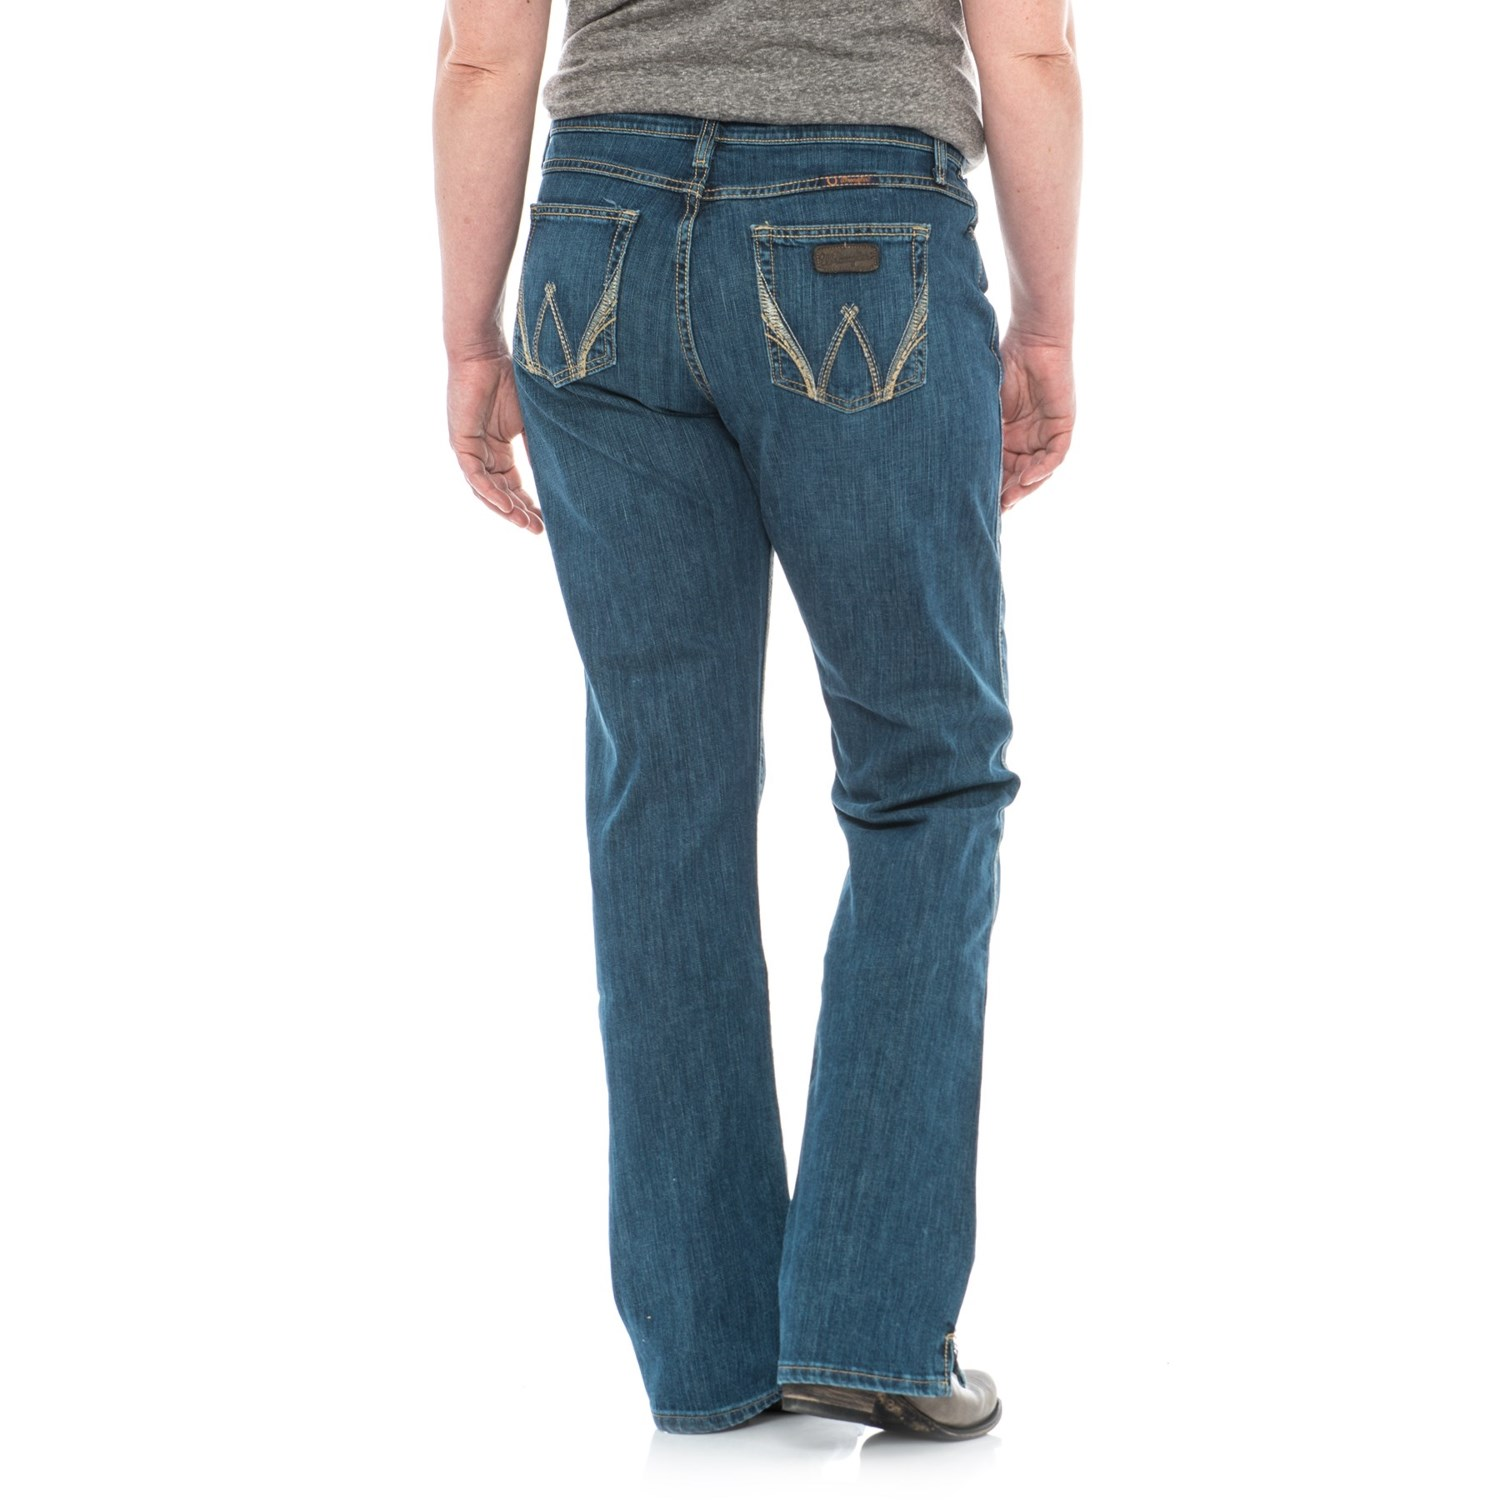 f9f886a5 Wrangler Q-Baby Ultimate Riding Jeans - Sits Below the Waist, Bootcut (For  Women)